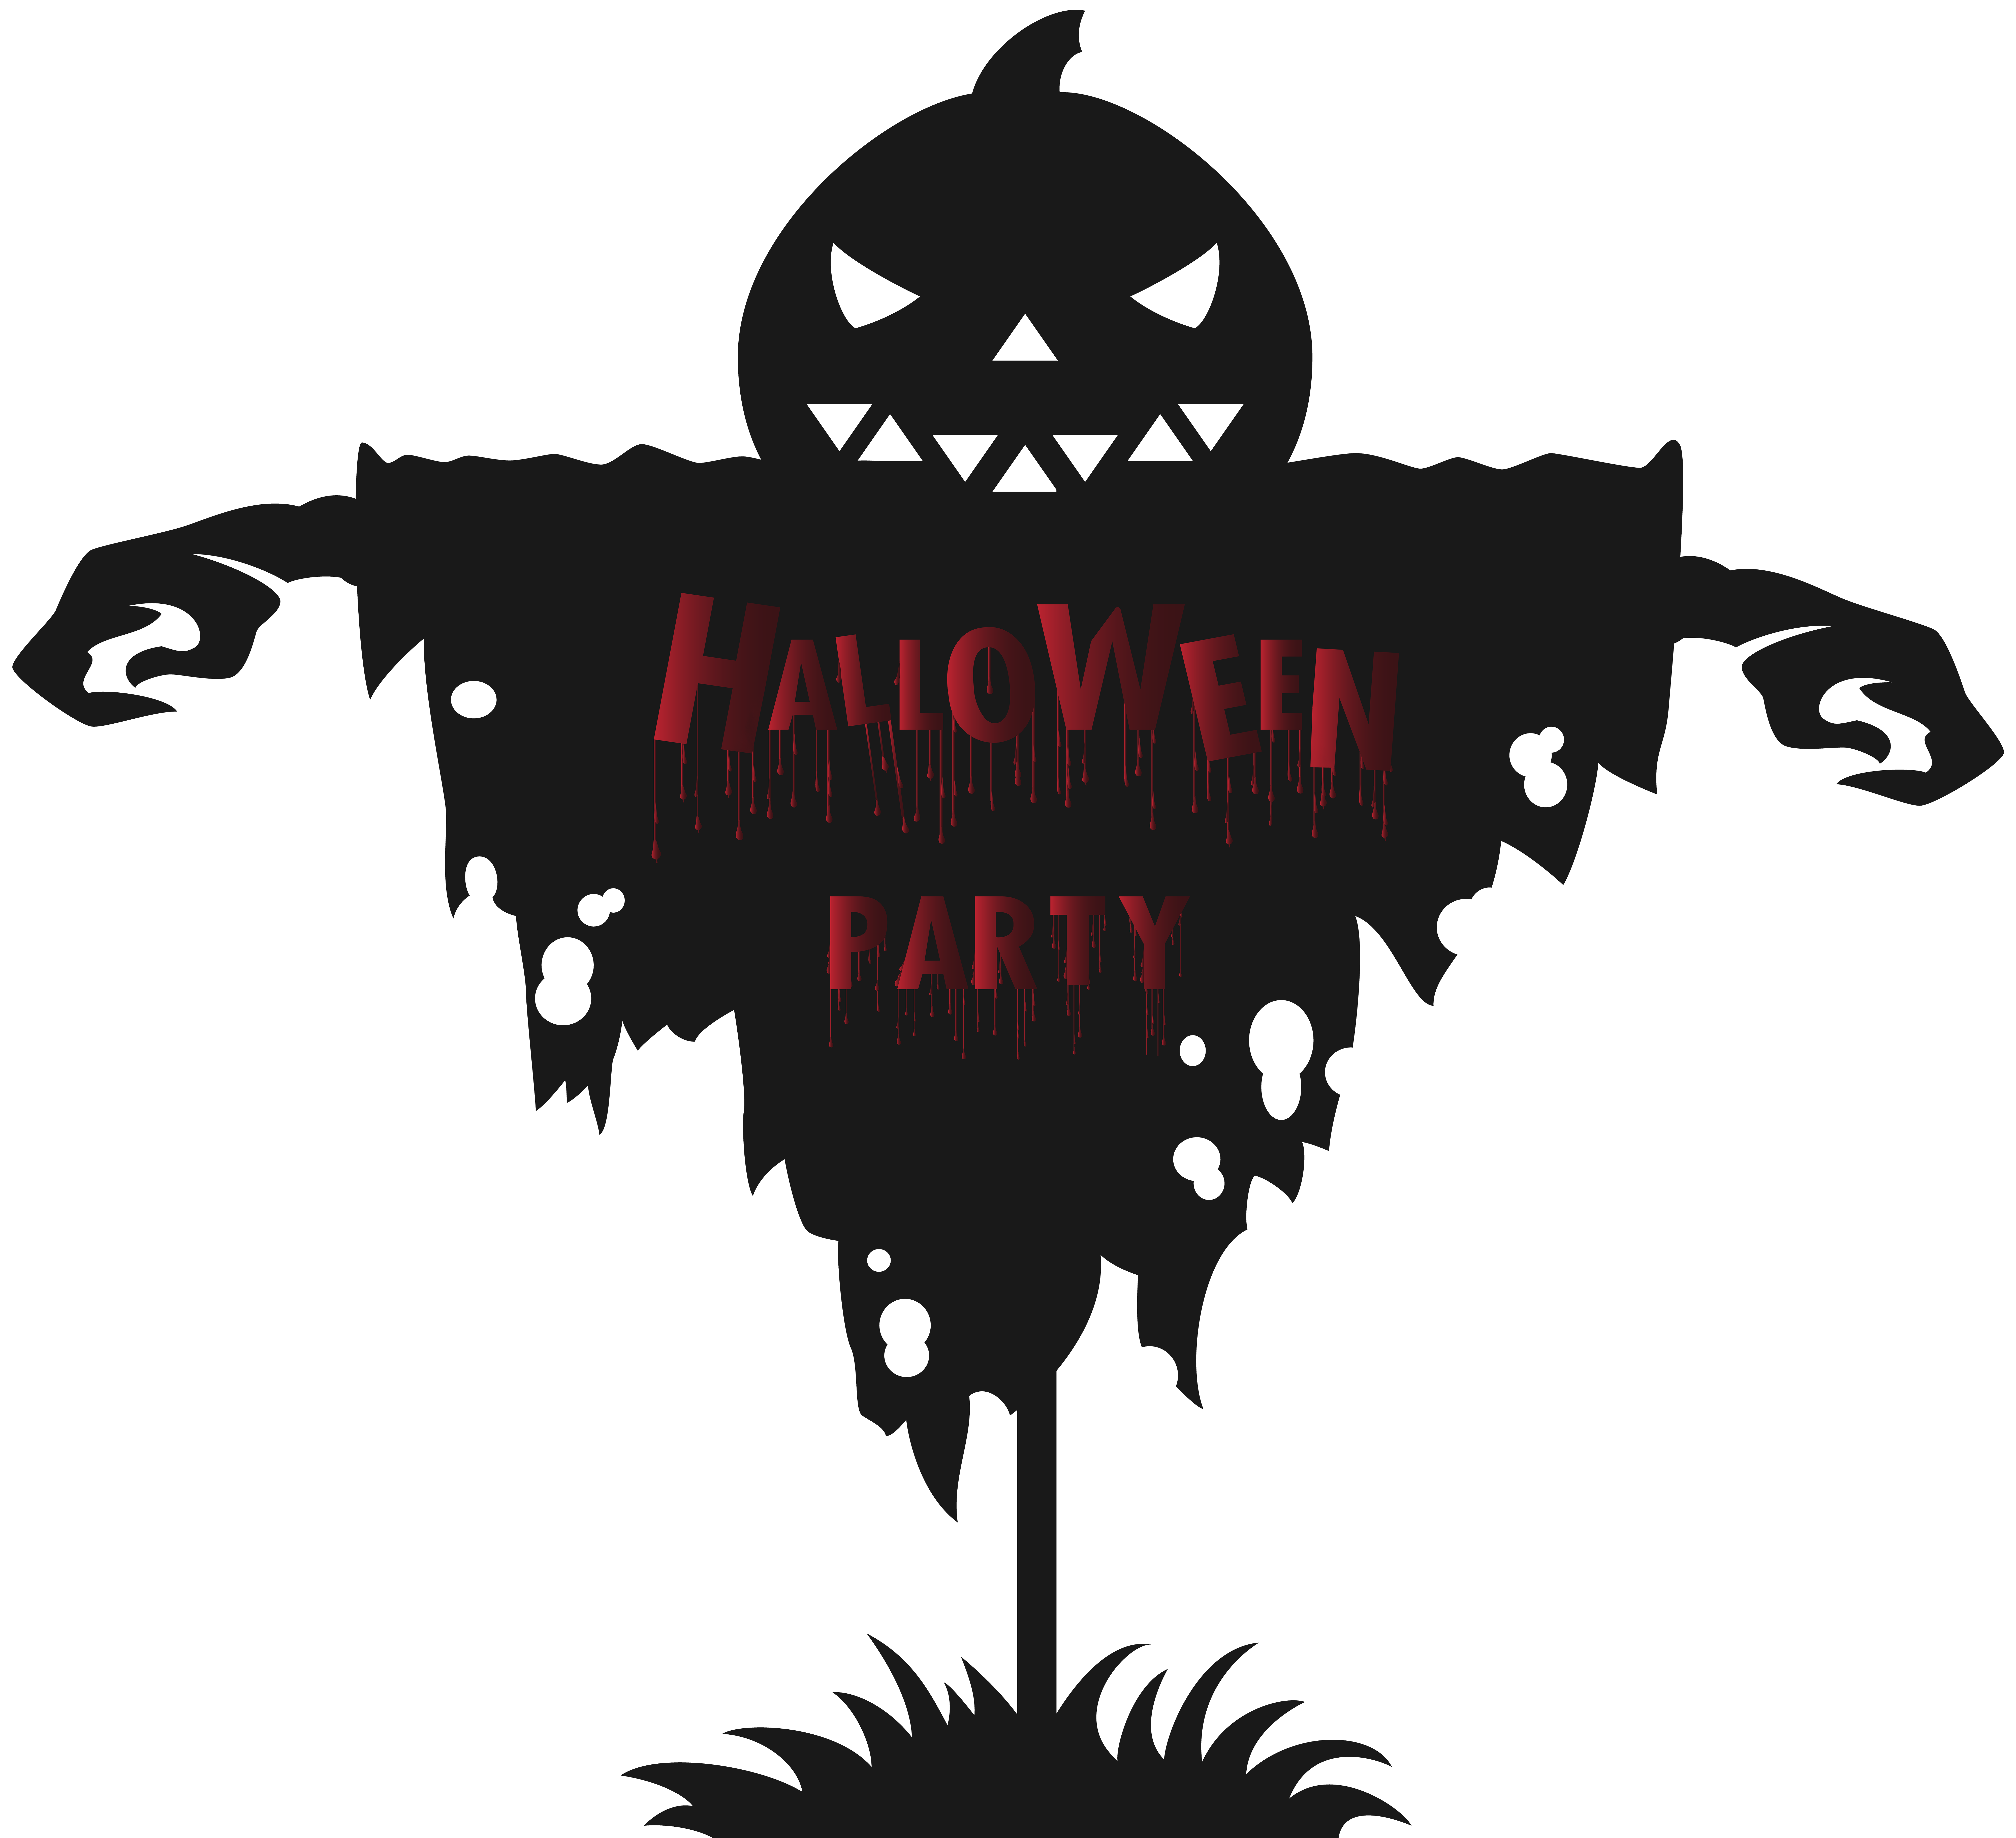 Halloween Party Scarecrow PNG Clip Art Image.